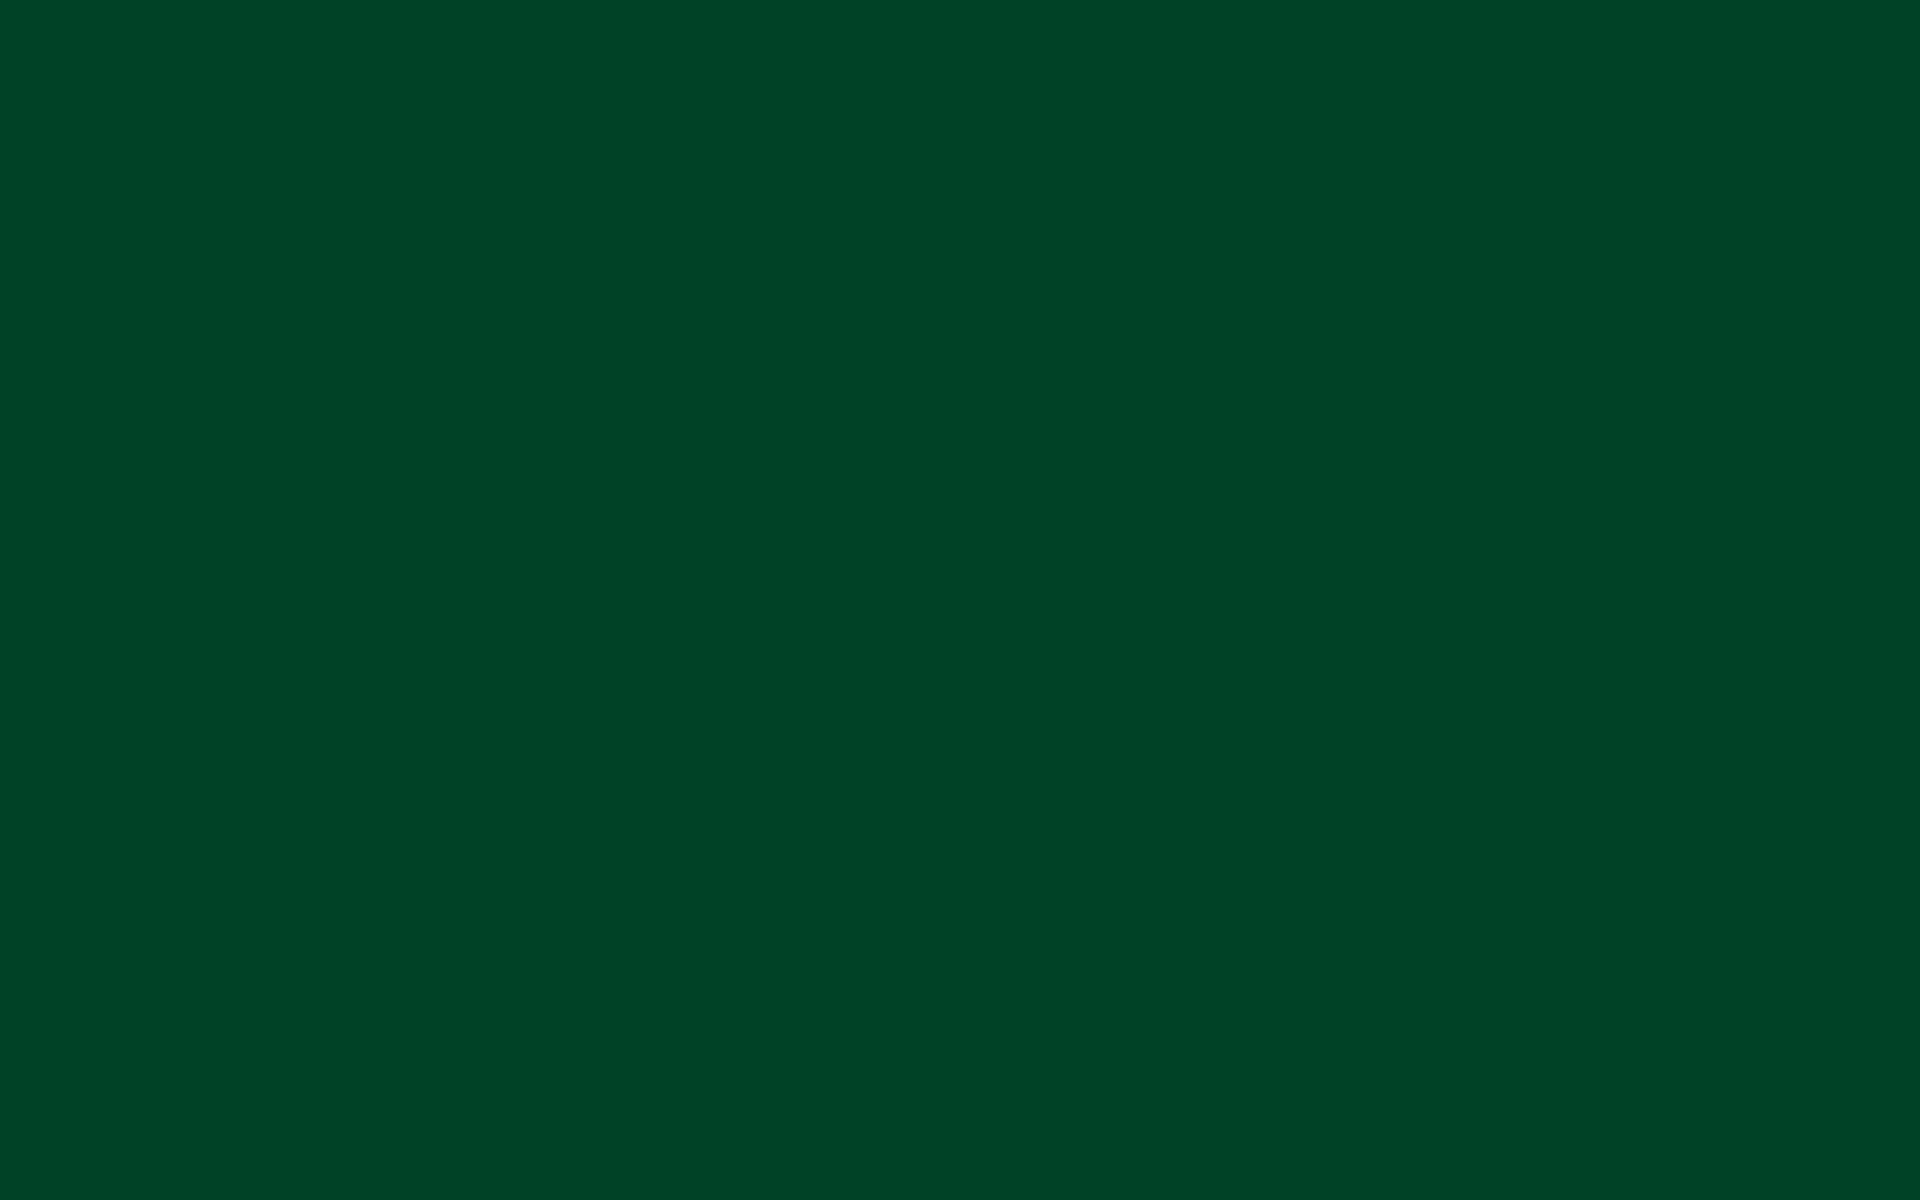 1920x1200 British Racing Green Solid Color Background